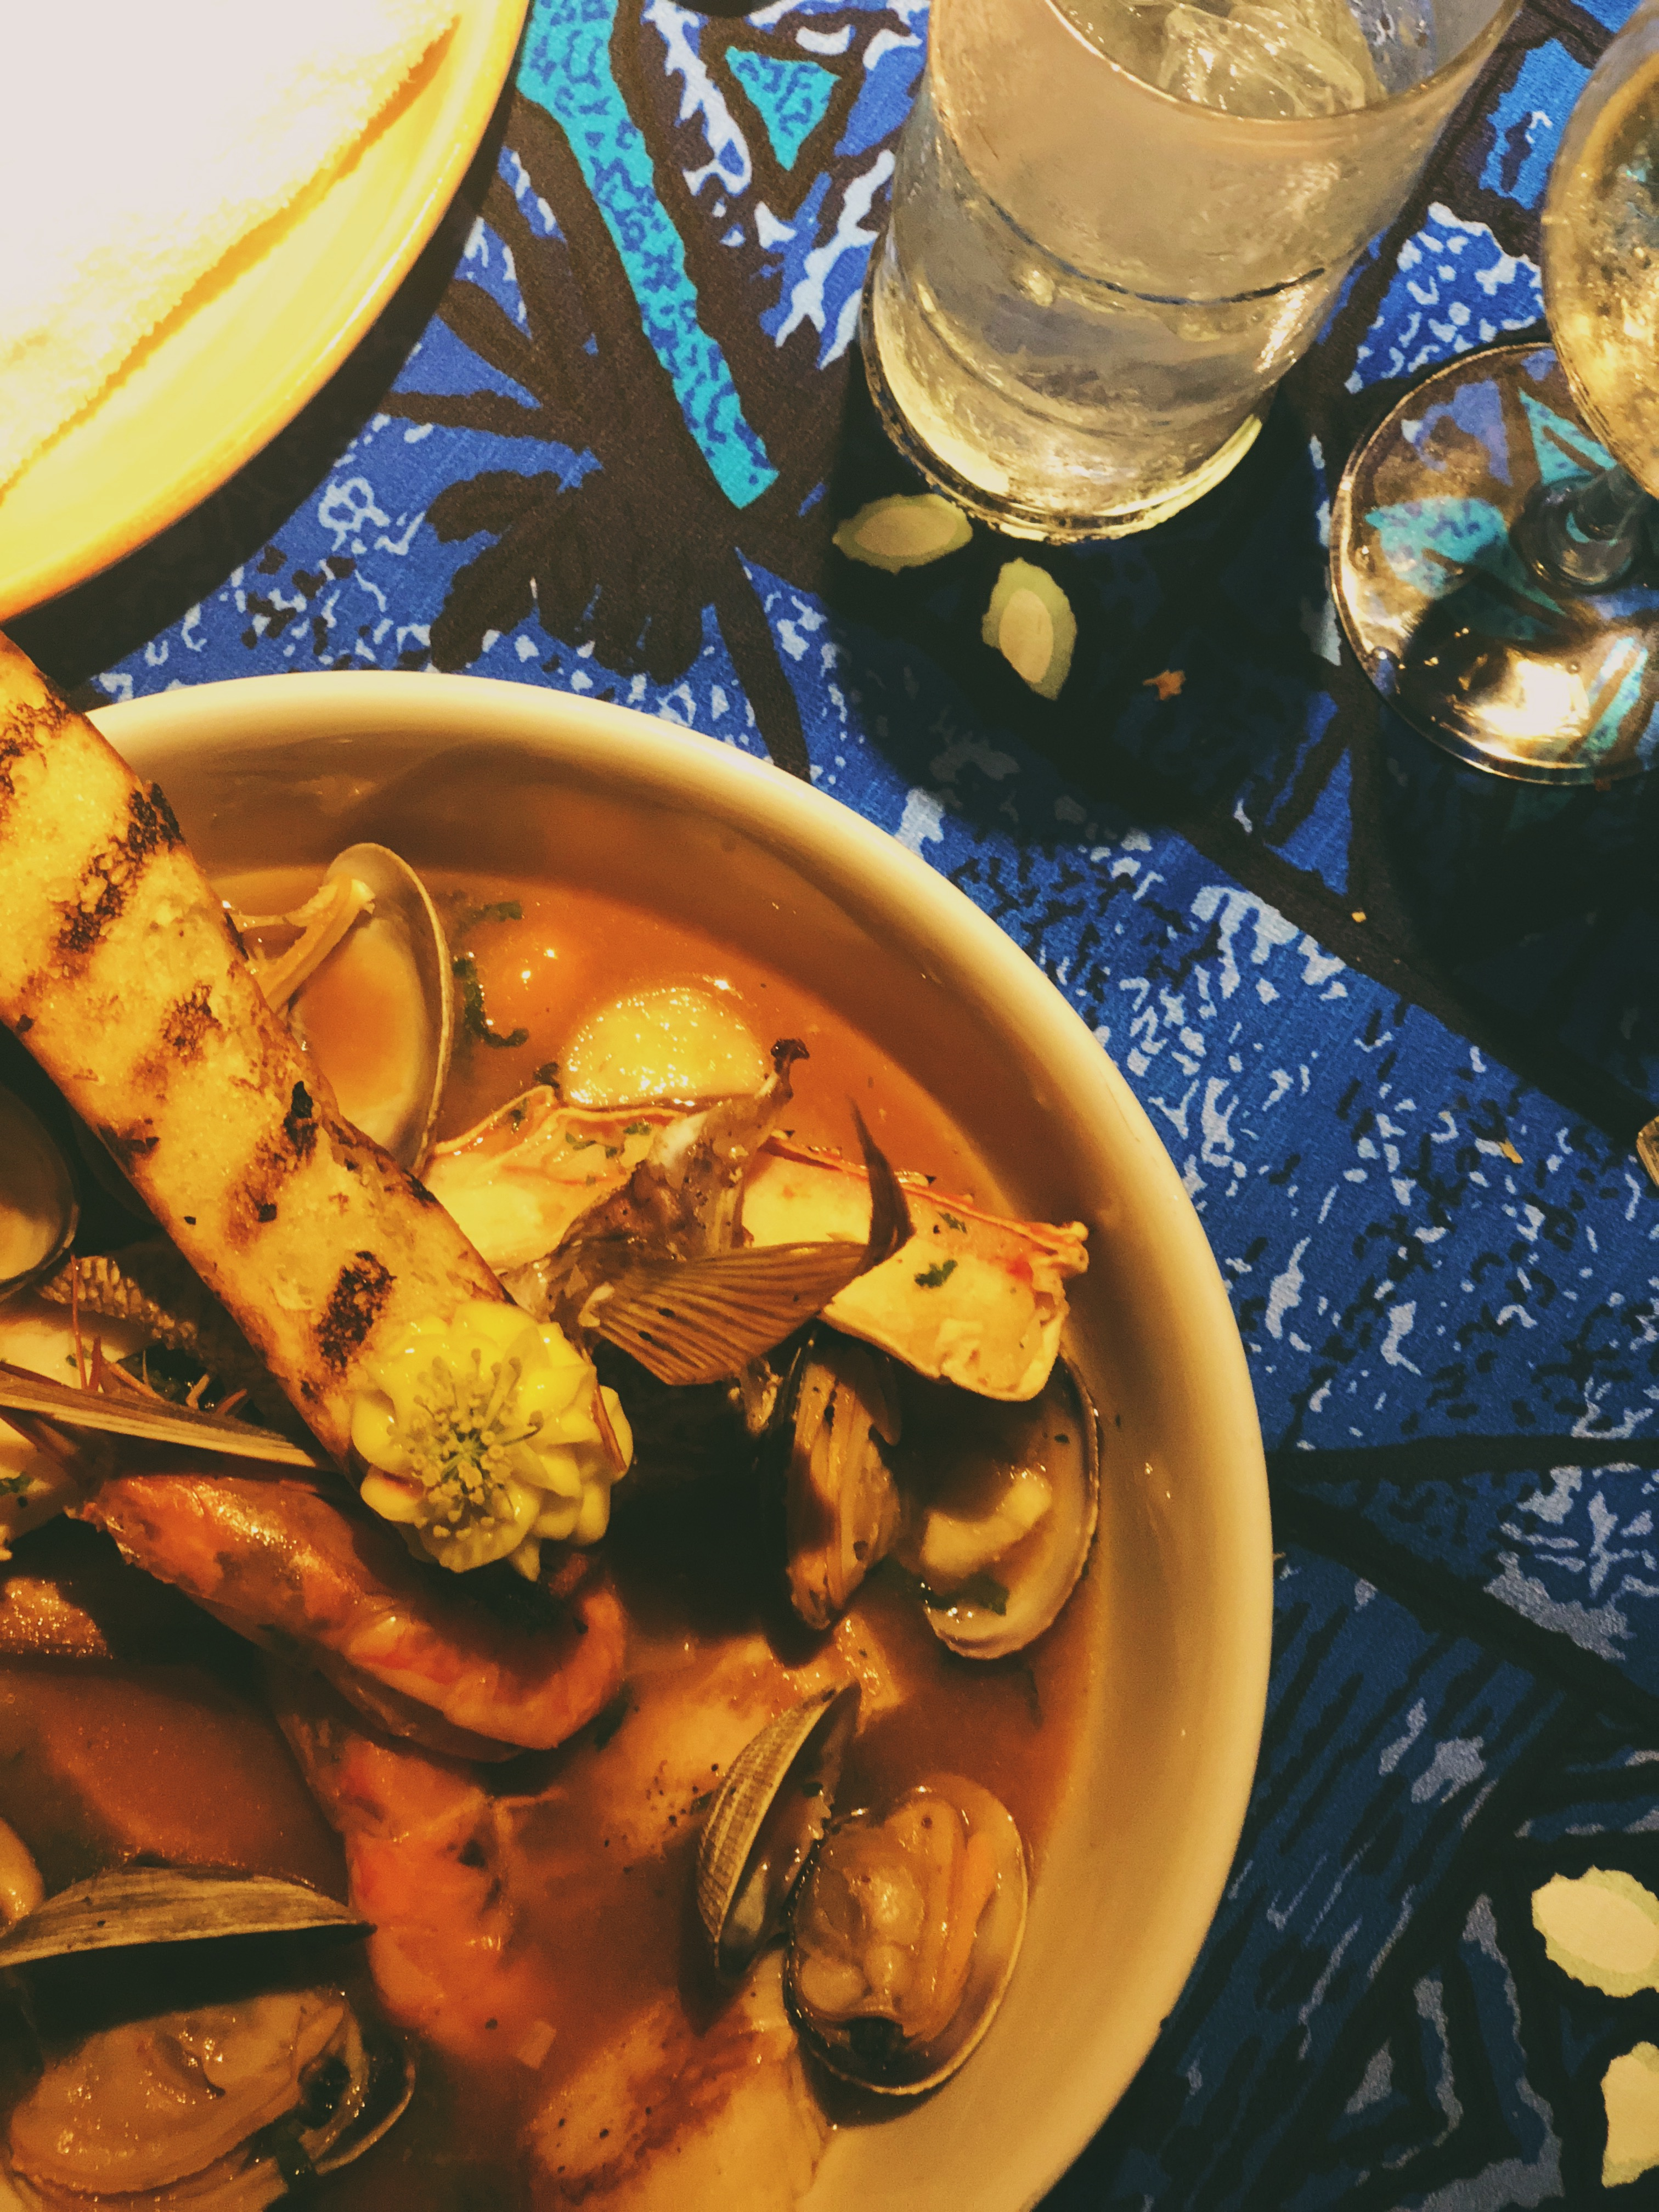 Bouillabaisse: Mahi mahi, ahi, king crab, clams & scallops